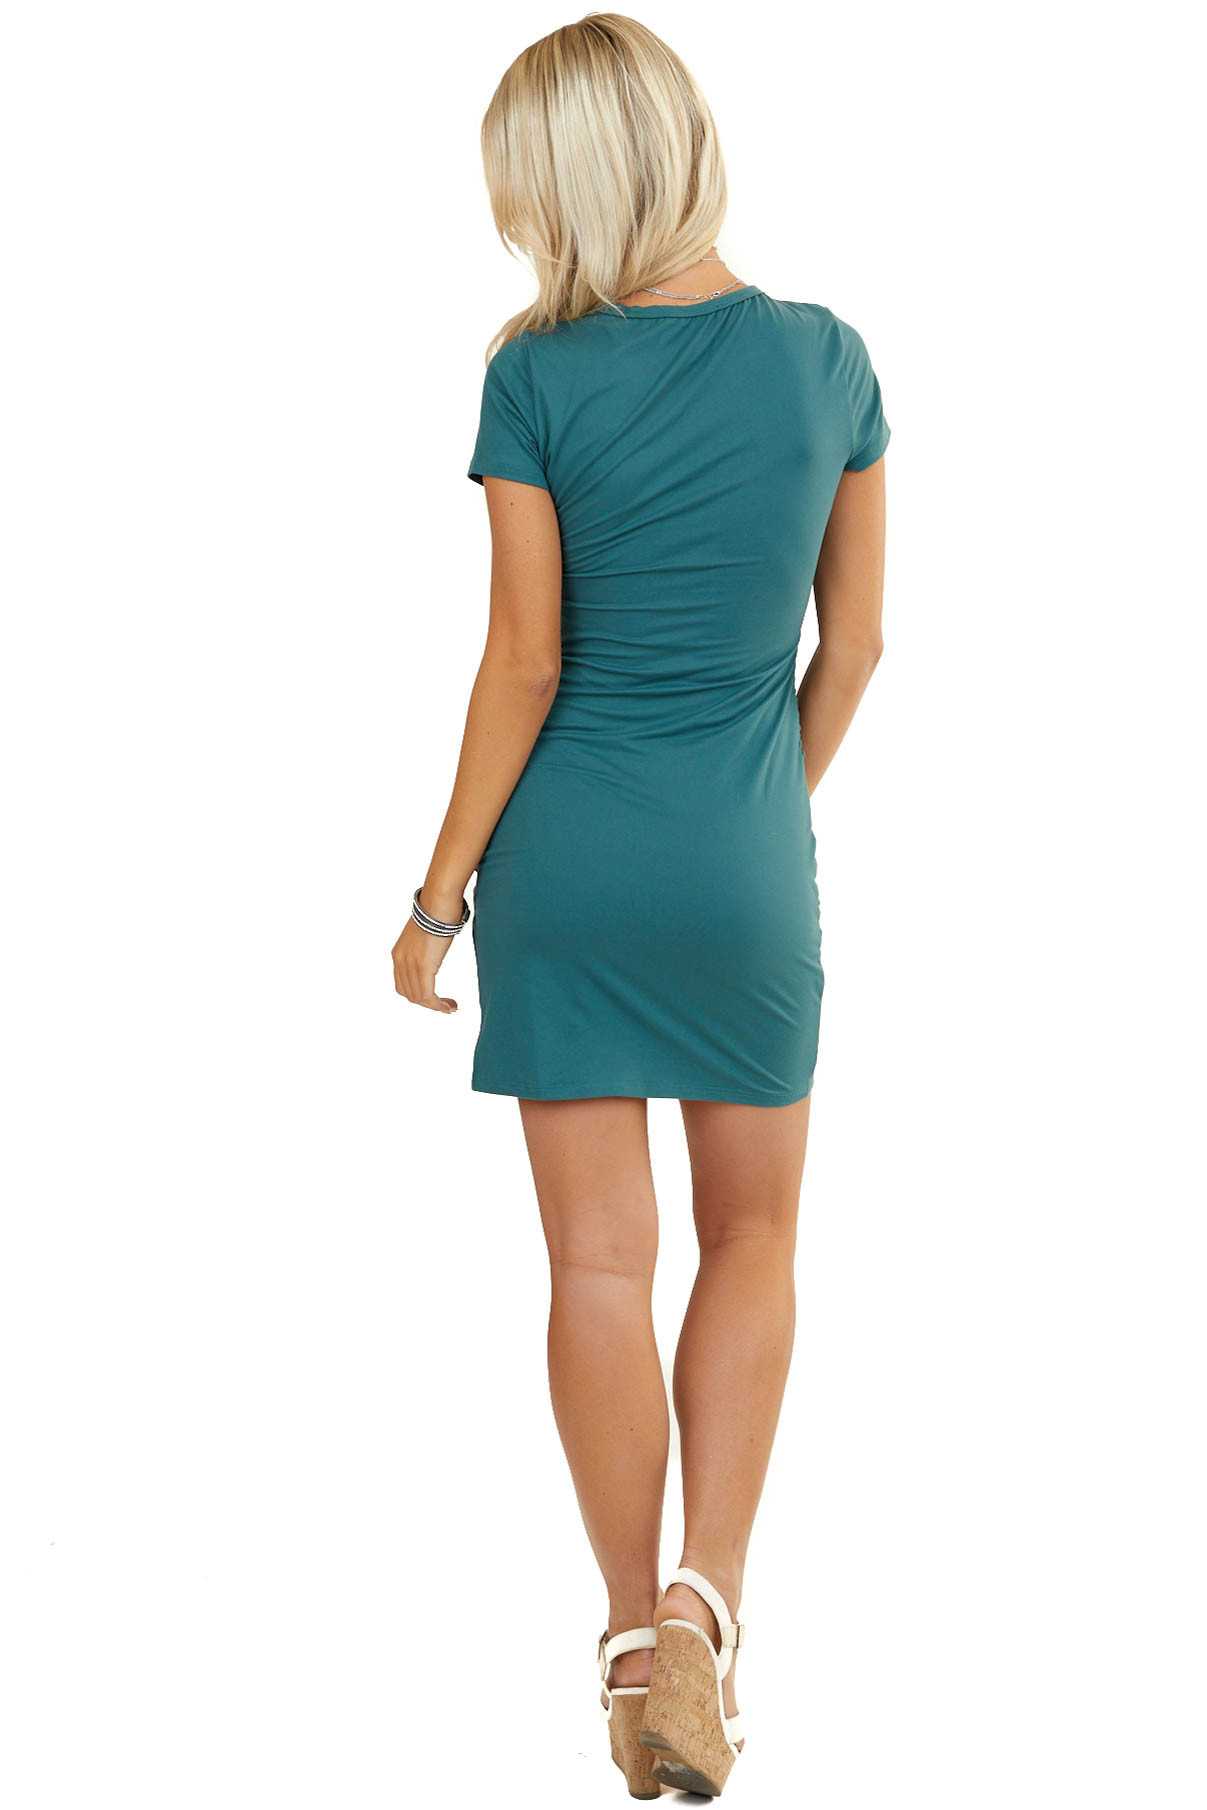 Hunter Green Short Sleeve Knit Dress with Side Ruching Detail